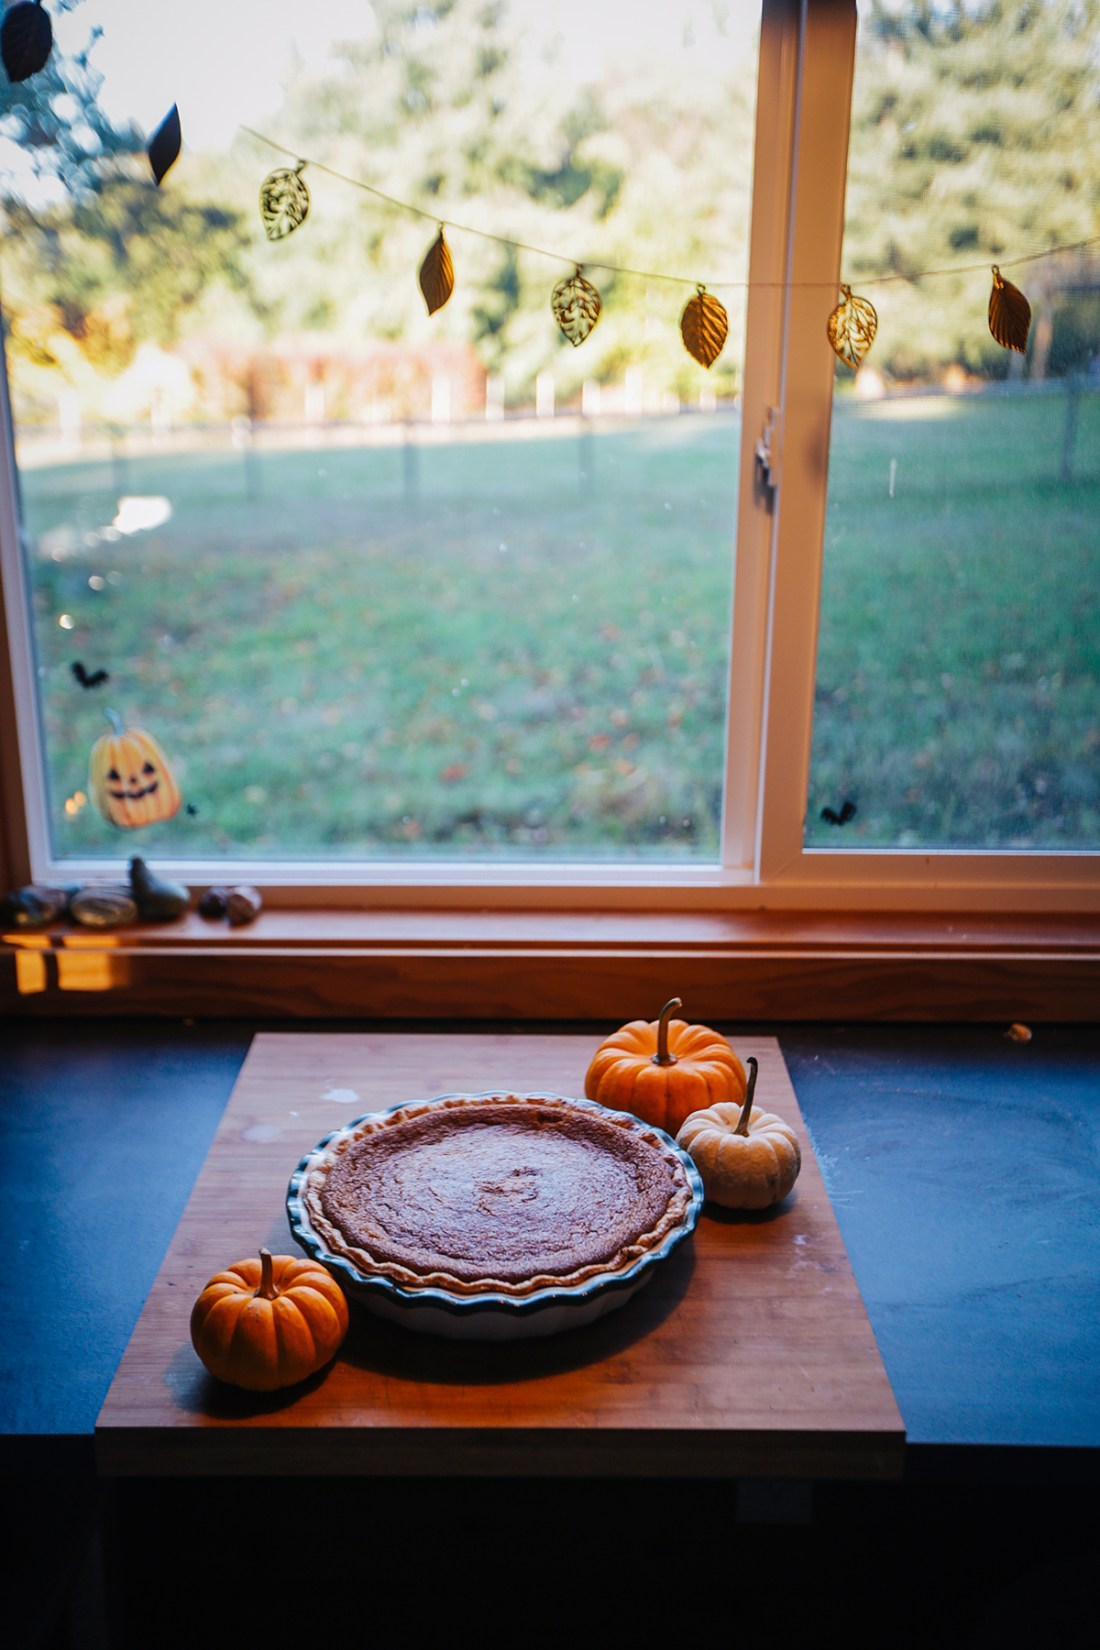 Pumpkin pie on the counter